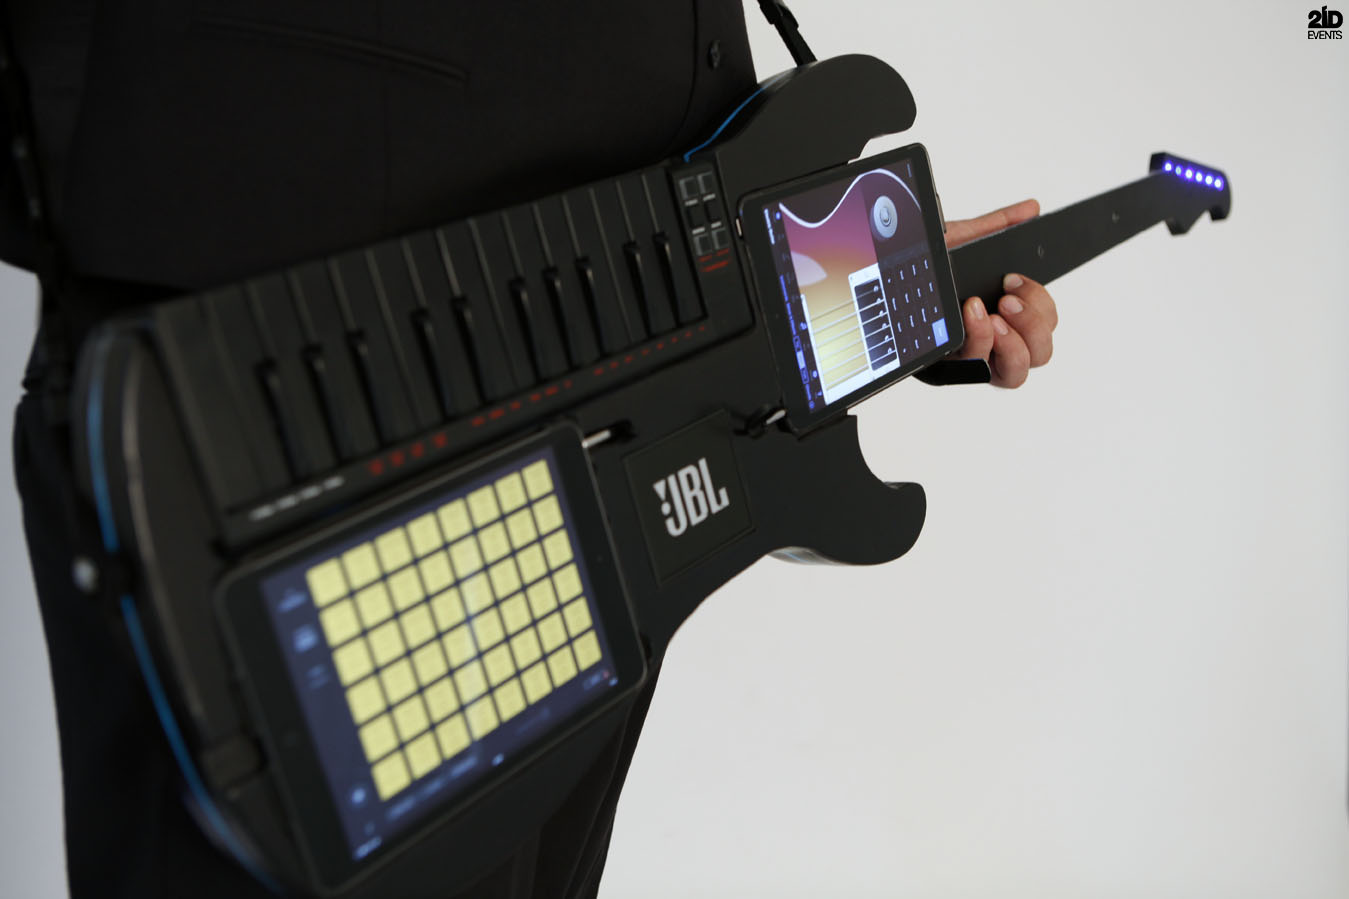 IPad Musicians for private events